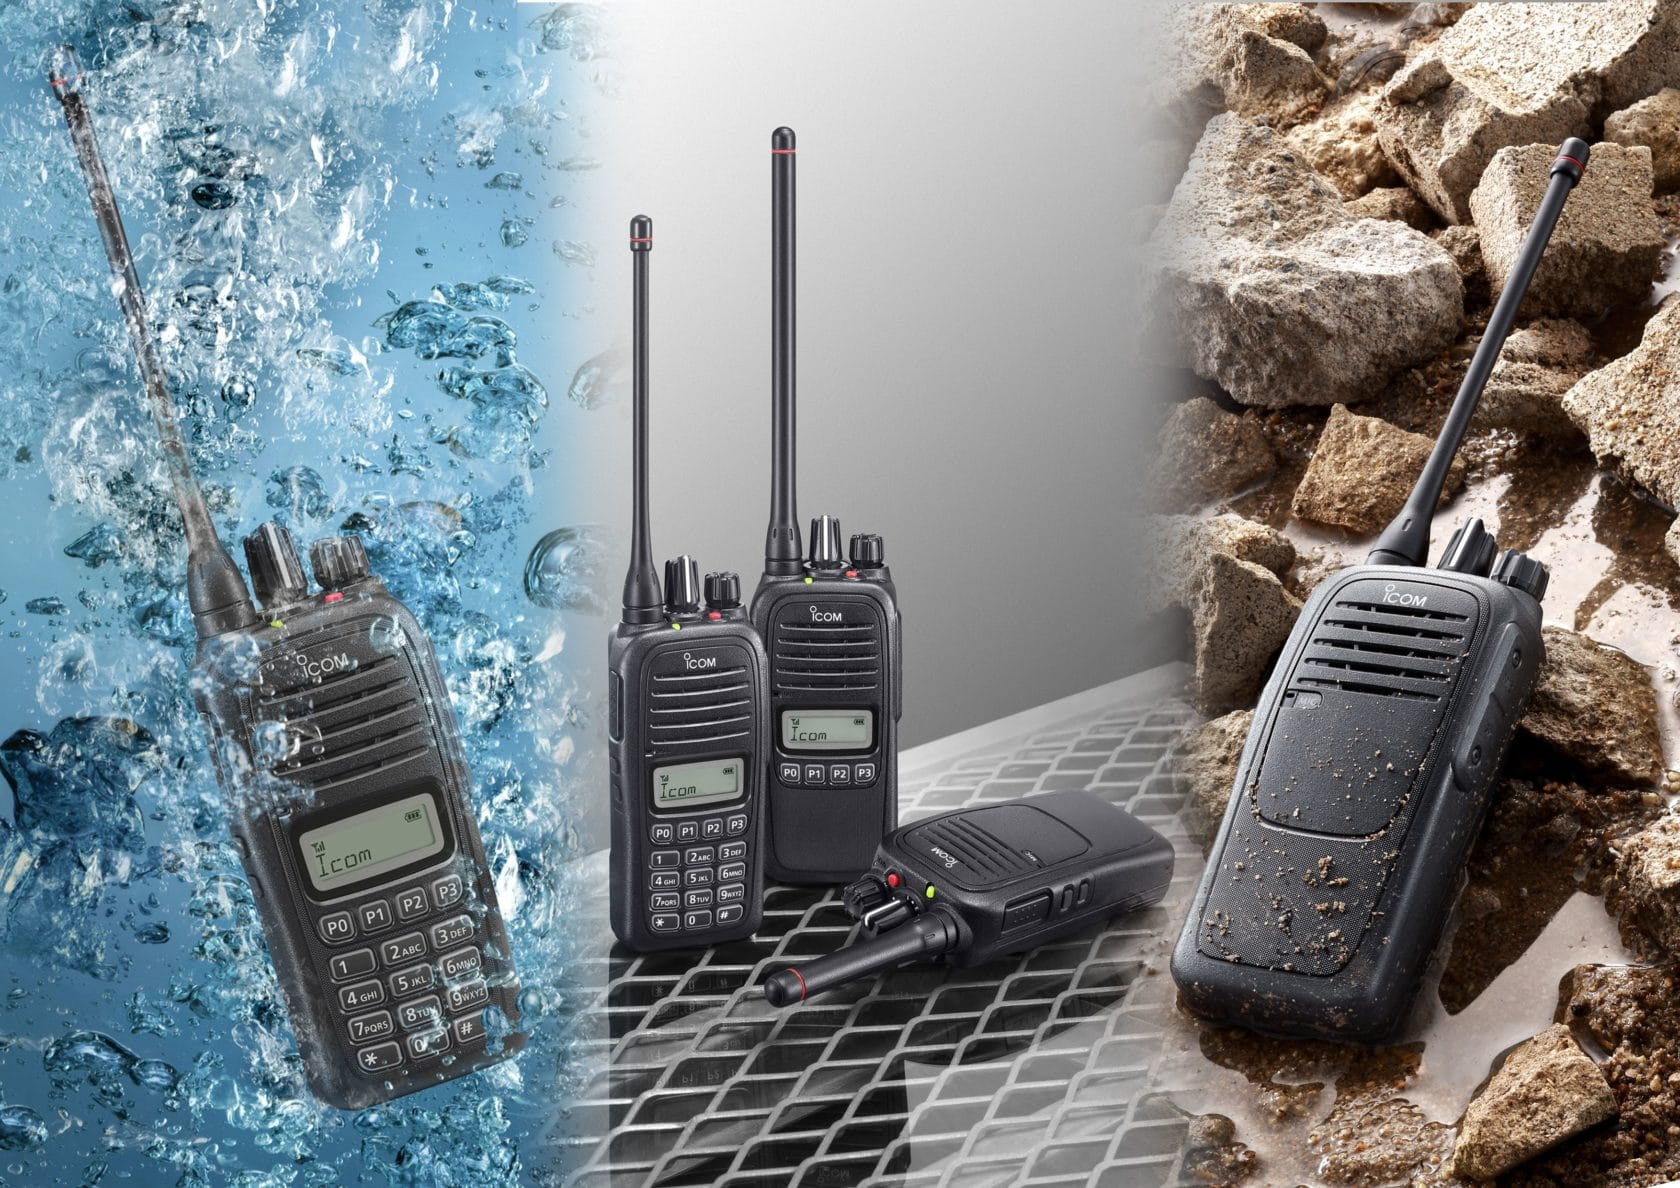 Reasons You Should Use Two-Way Radios as Compared to Cellphones 1